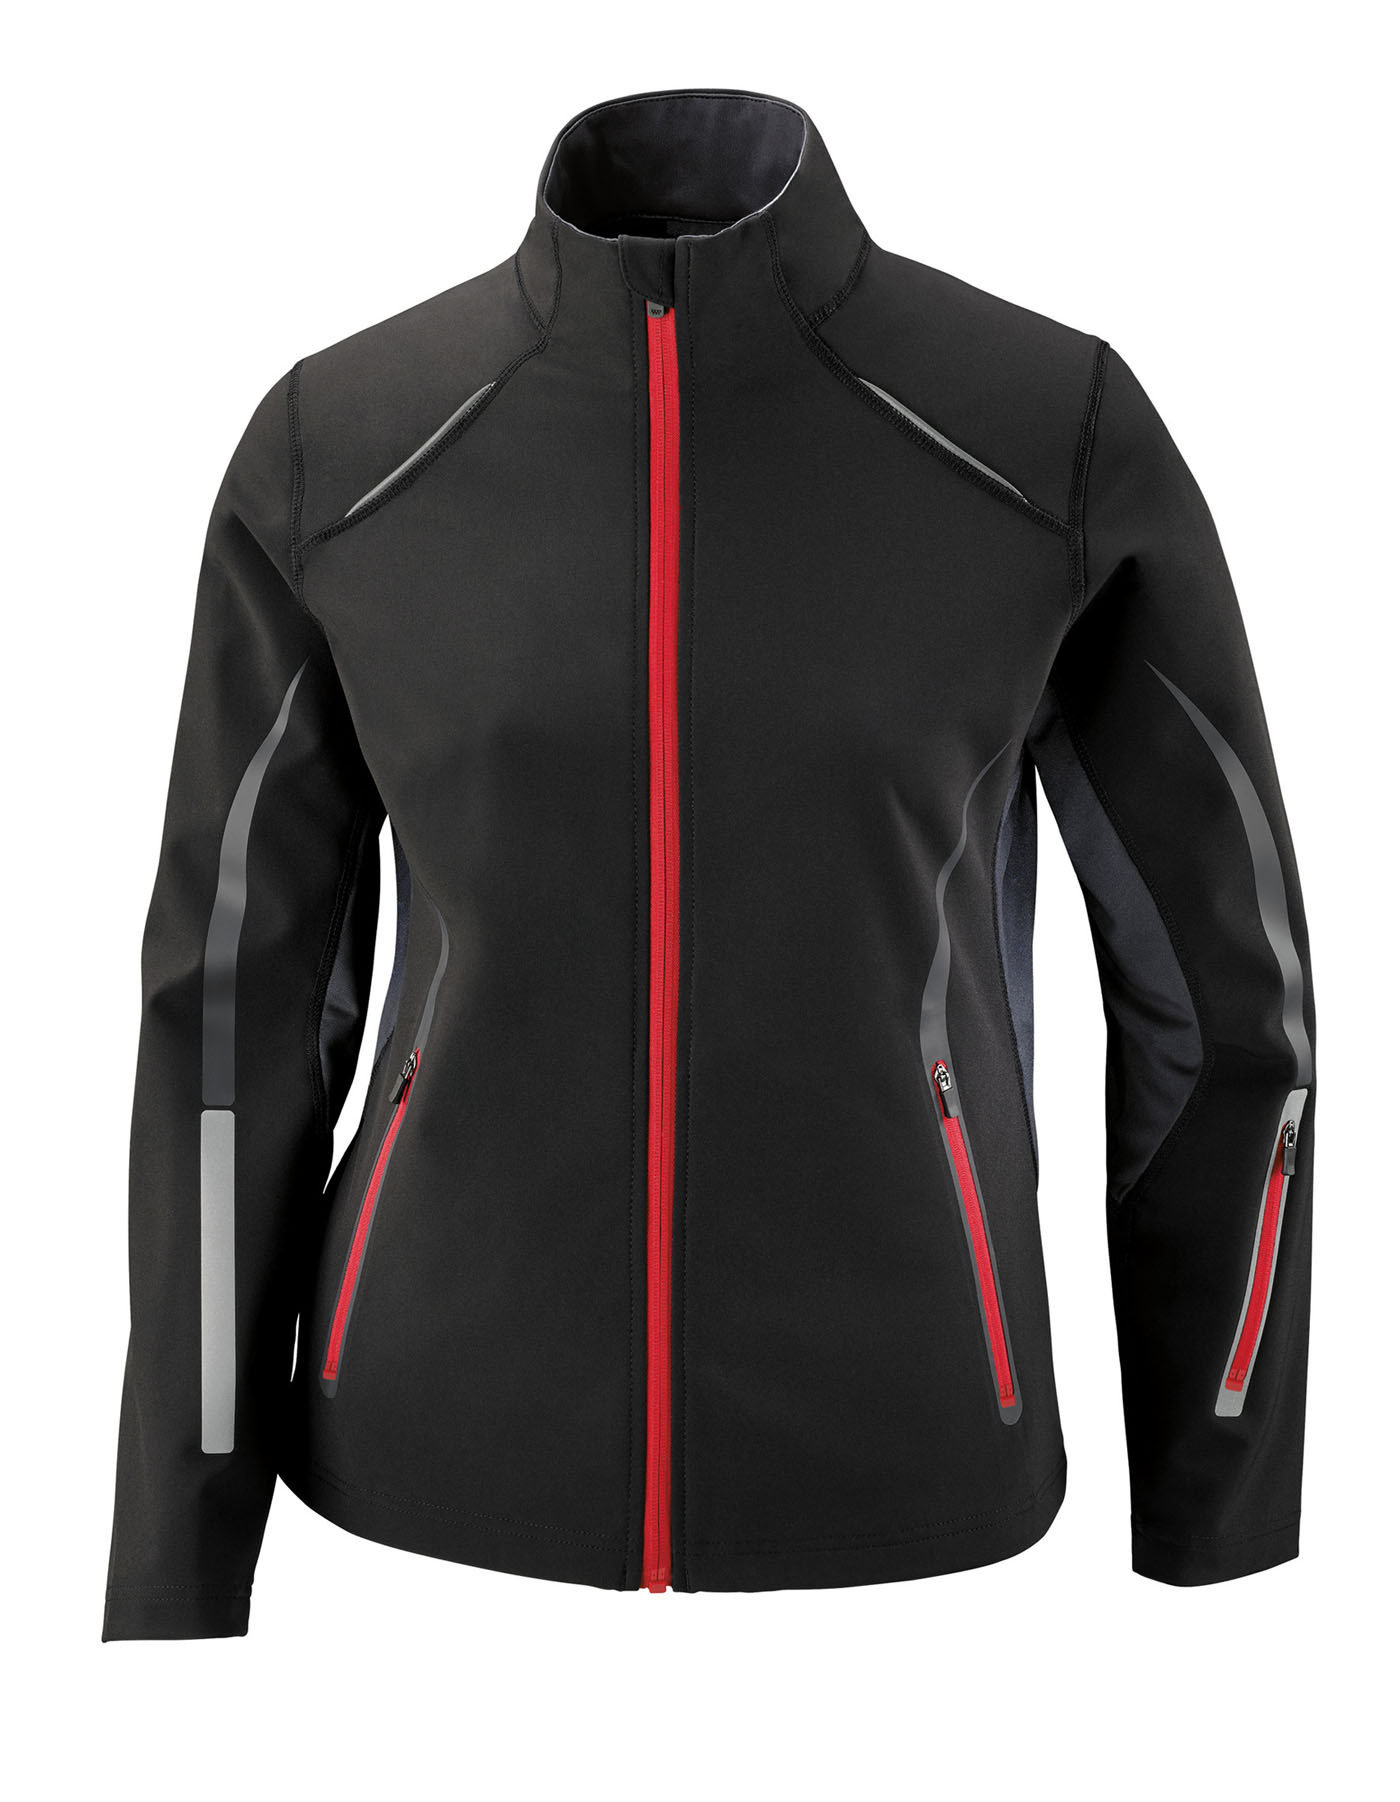 Ash City Light Bonded Jackets 78678 - Pursuit Ladies'...